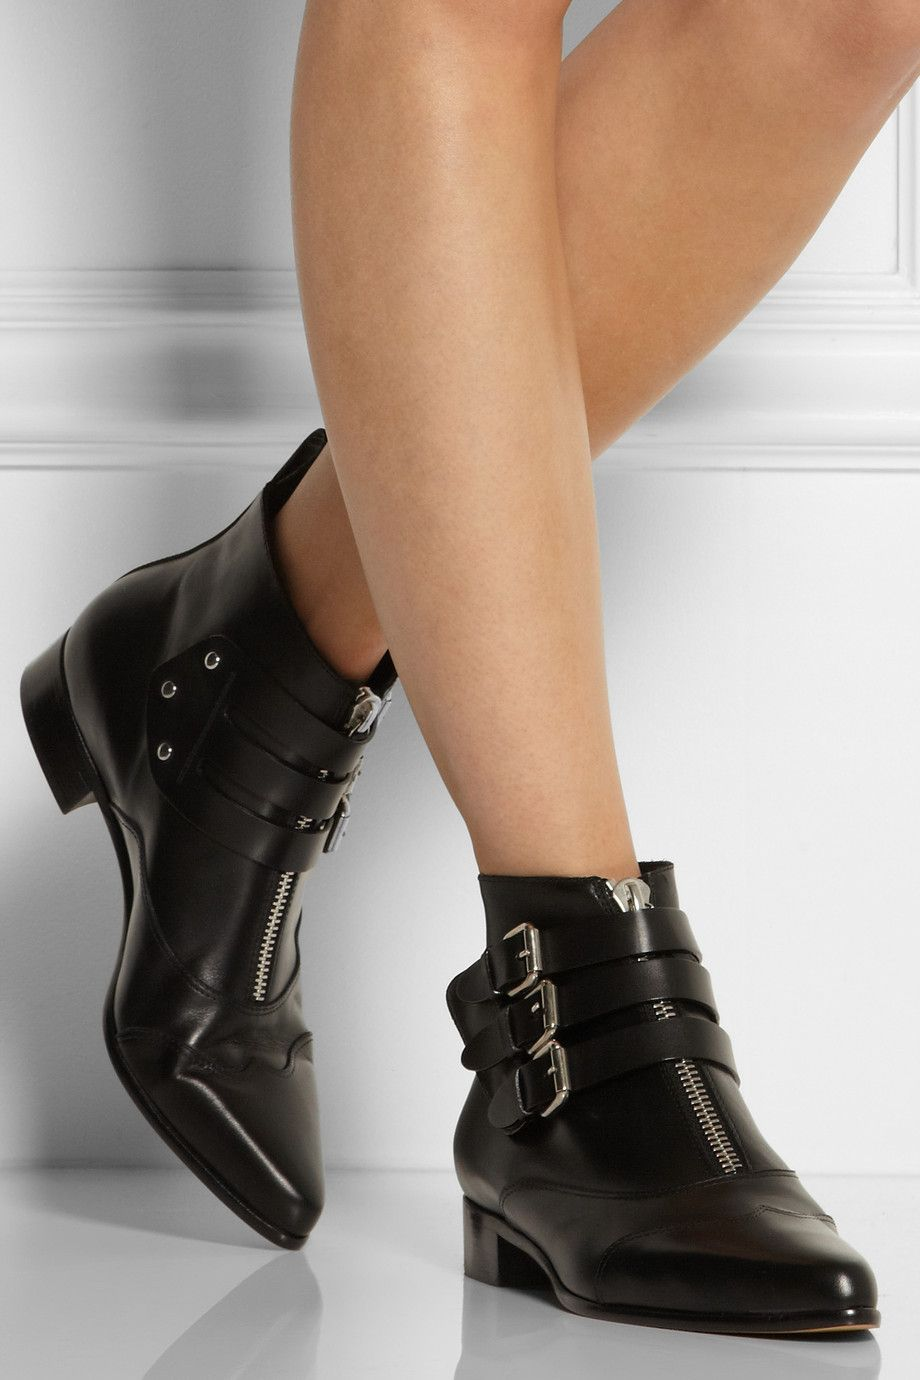 Tabitha Simmons Early Suede Ankle Boots best wholesale top quality cheap online cheap outlet store GCHu5qwxX